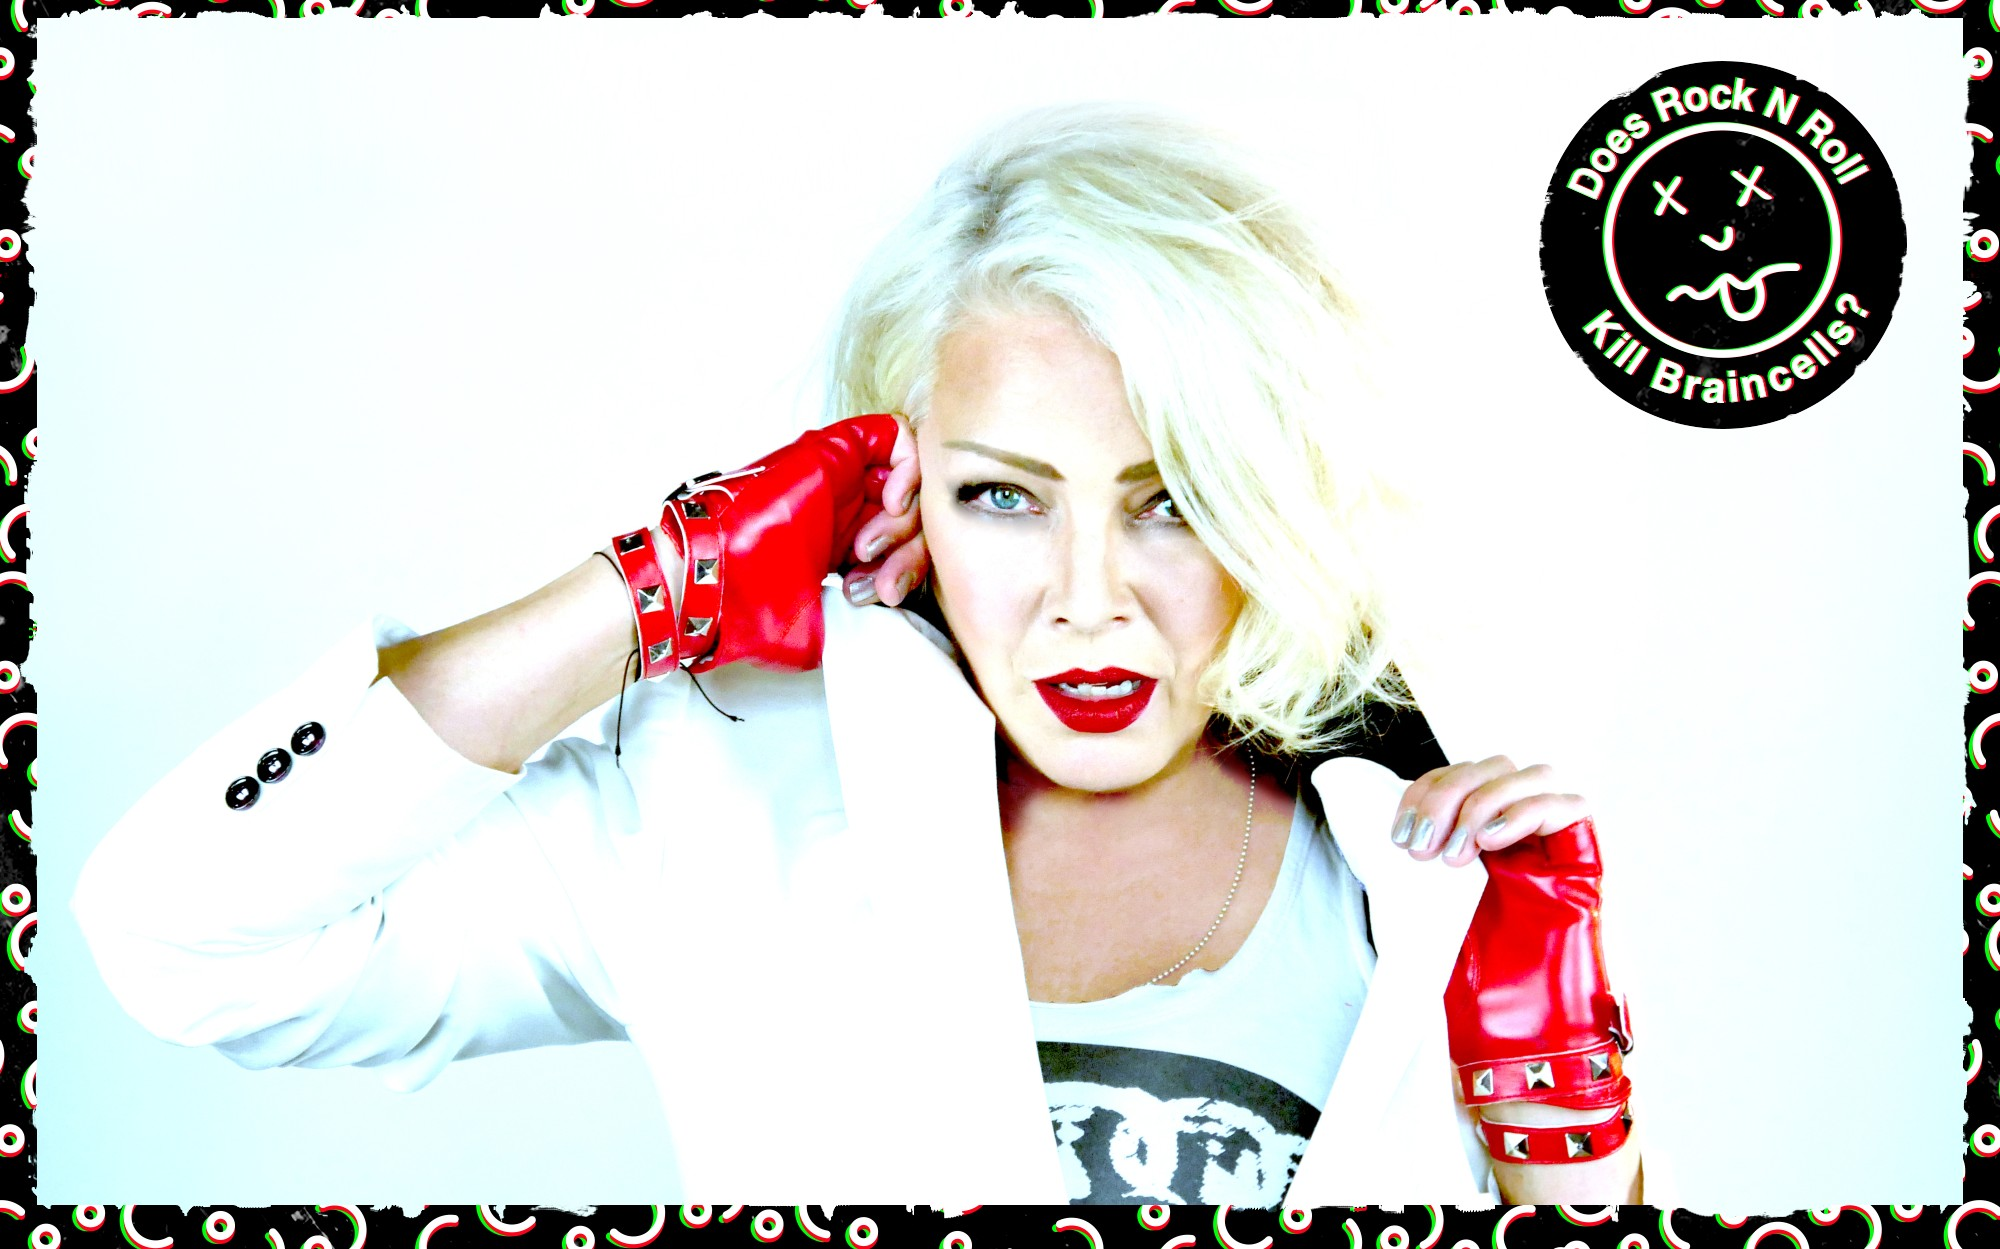 Does Rock 'N' Roll Kill Braincells?! – Kim Wilde - Askhiphop interview